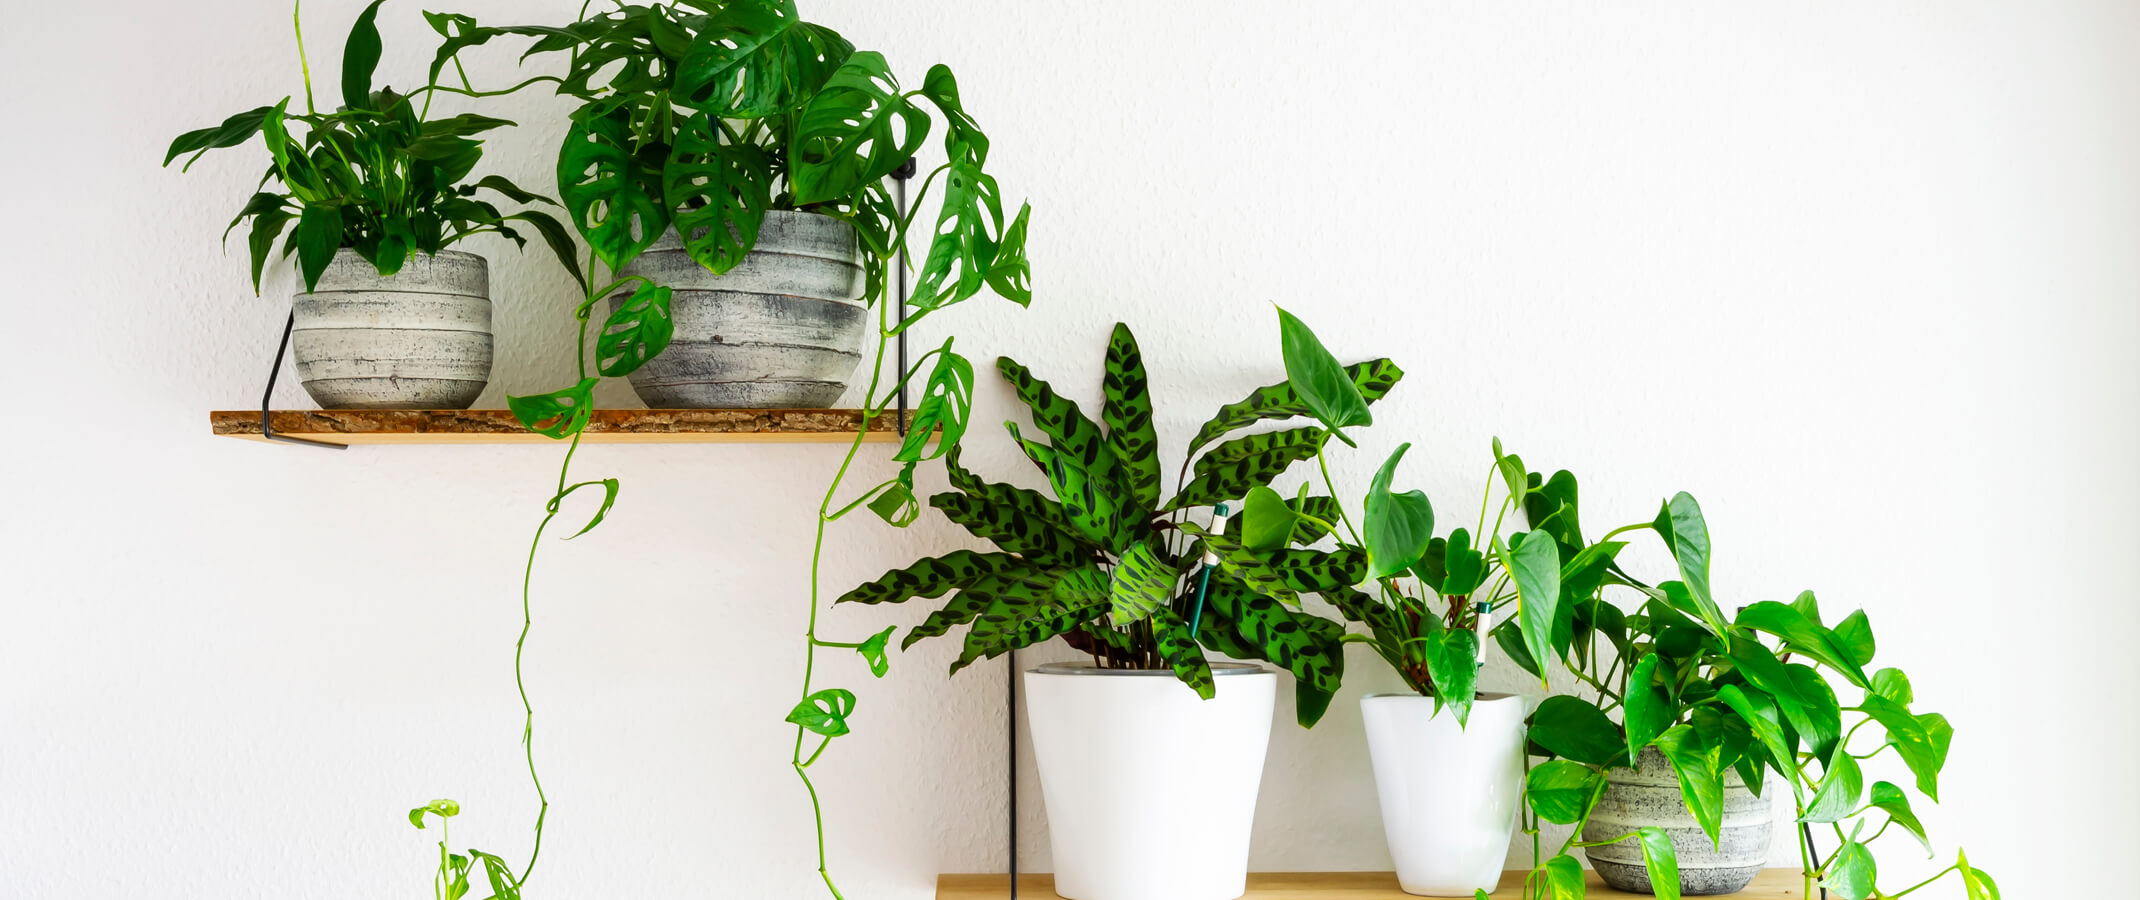 5 different houseplants in pots sitting on wall shelves